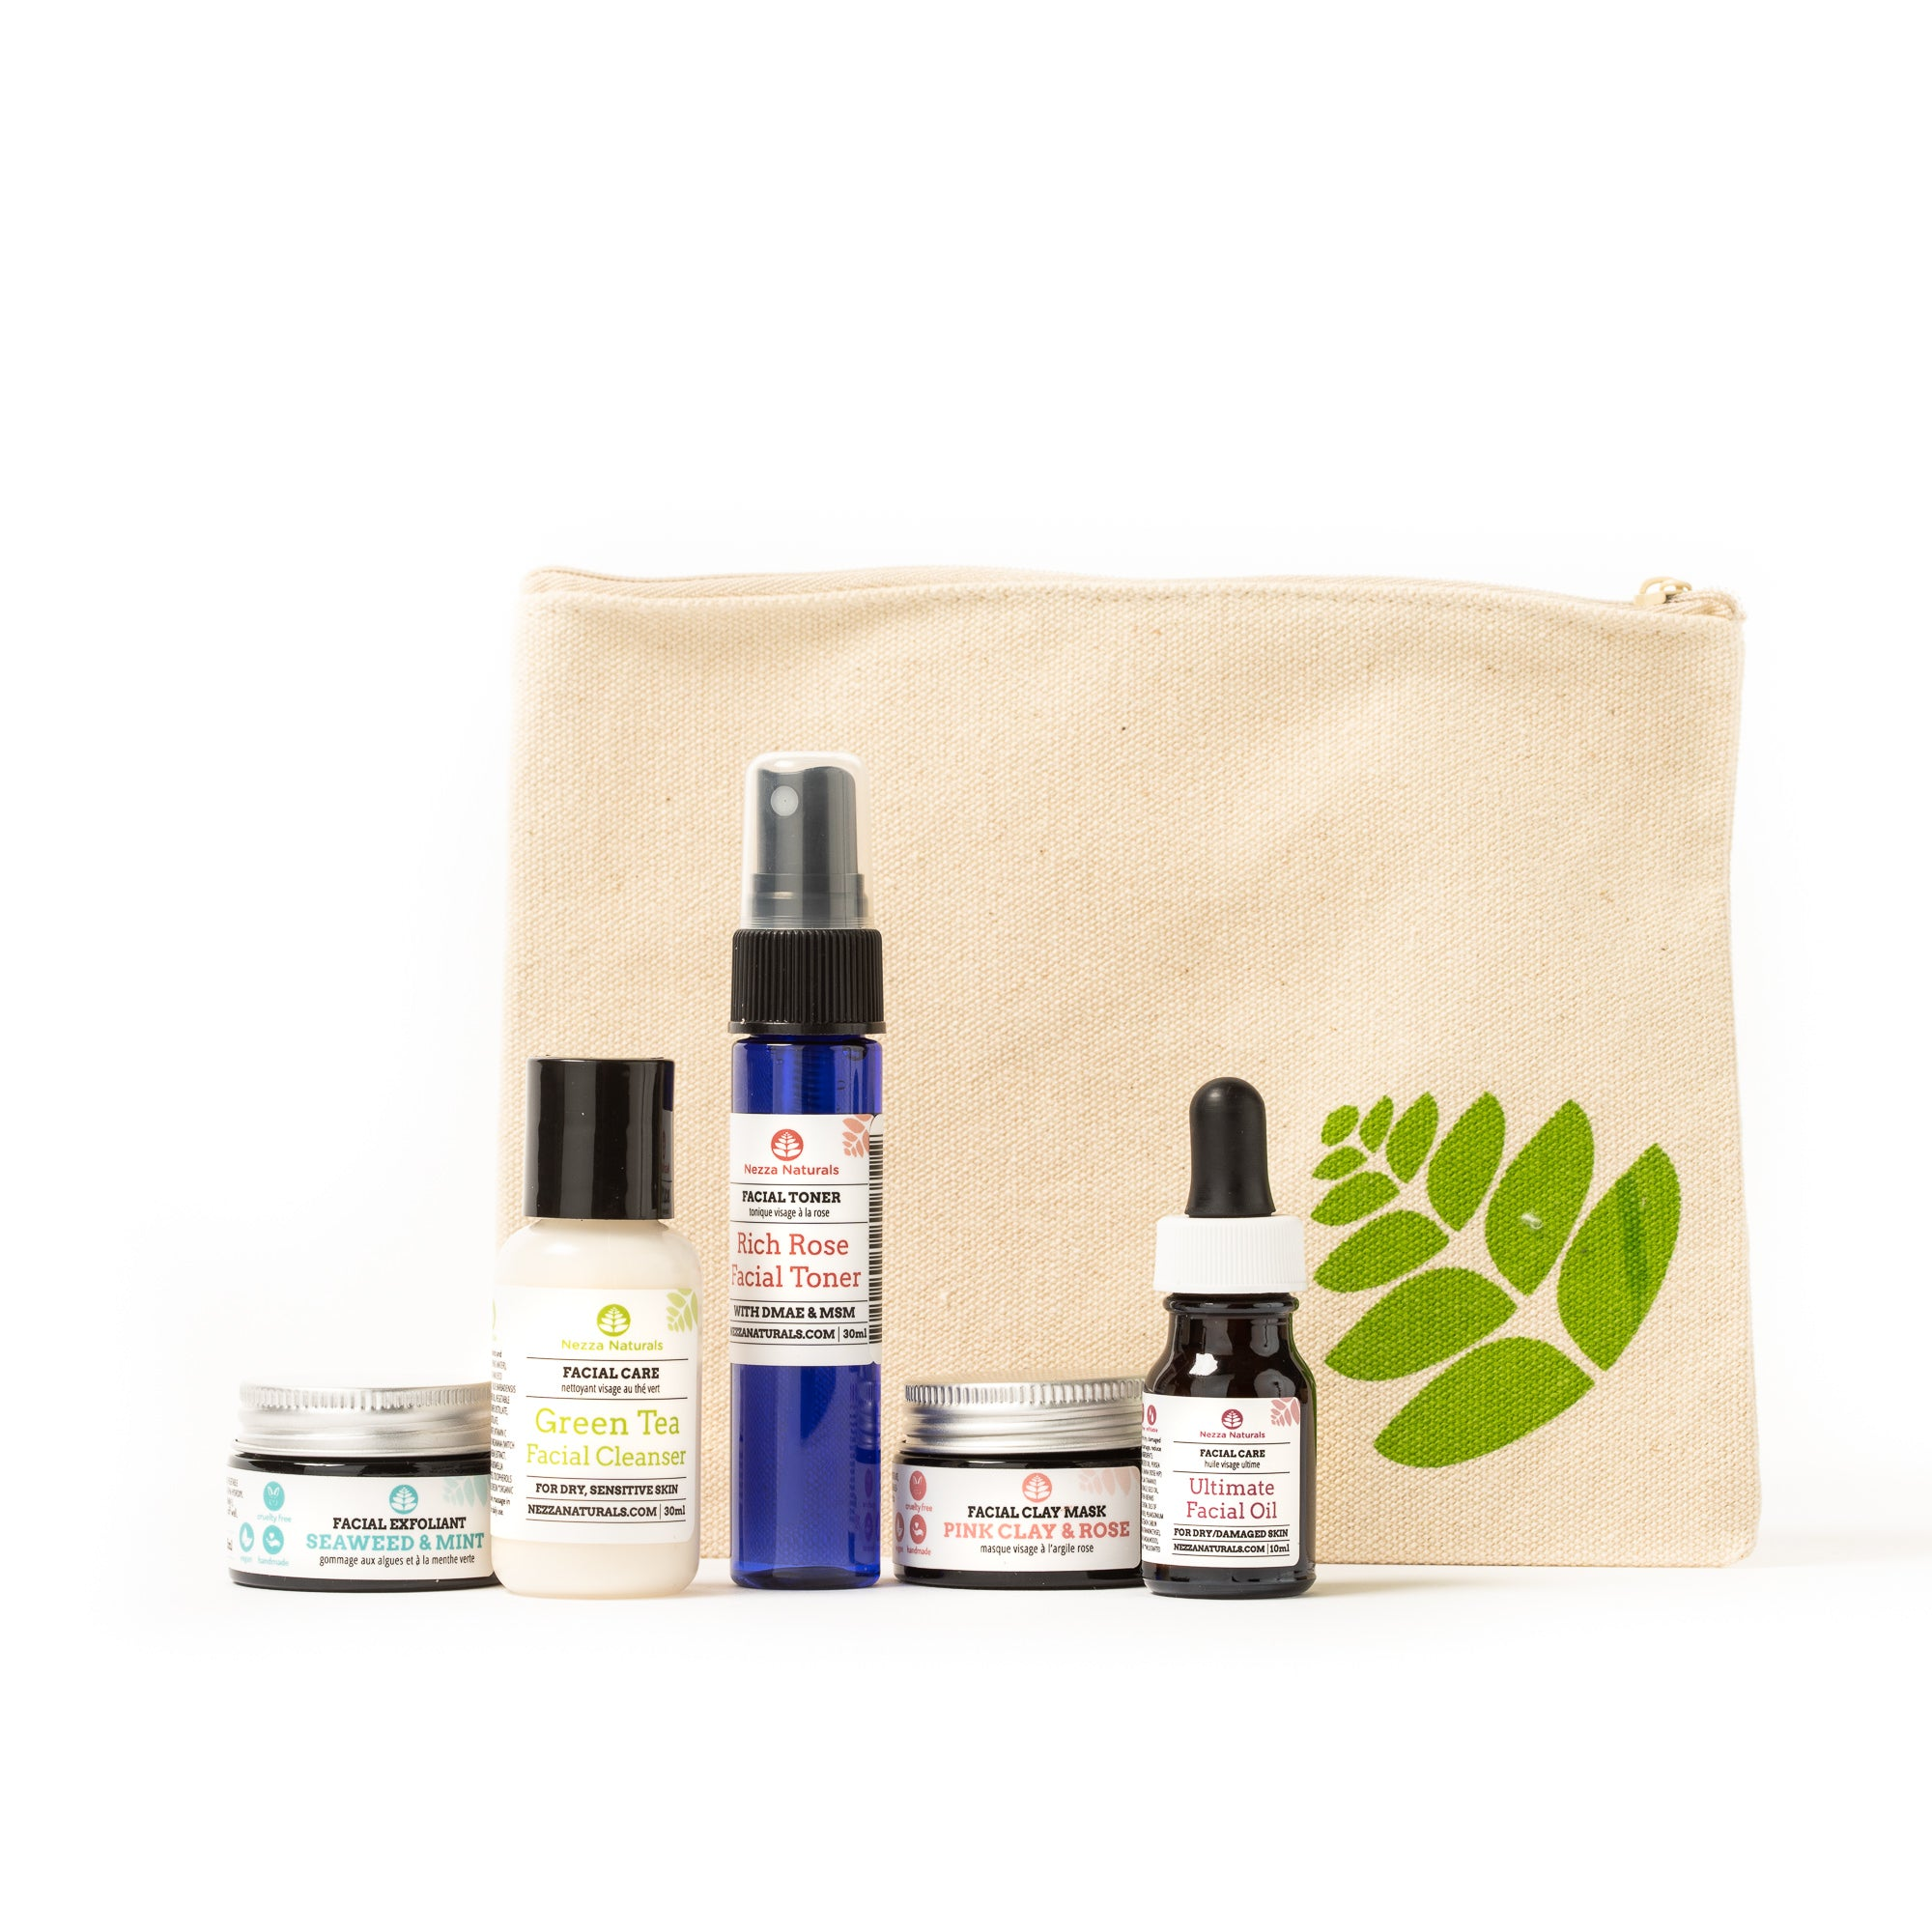 NOURISH Facial Starter Kit for Dry Skin